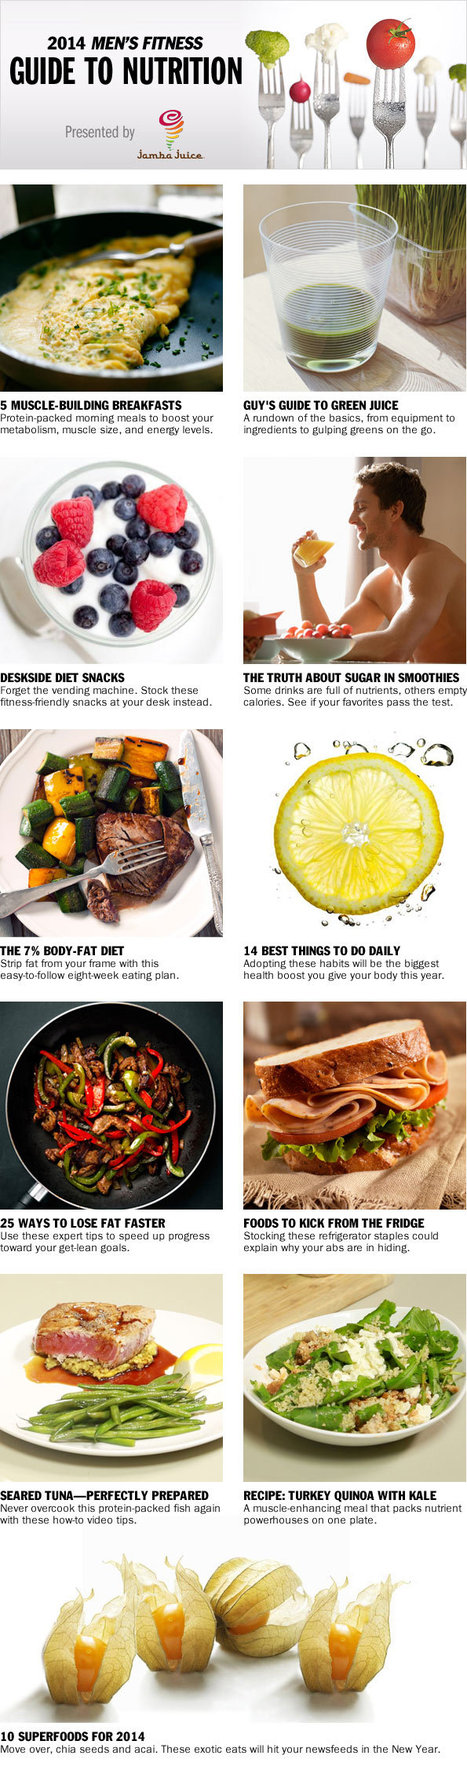 The 2014 Men's Fitness Guide to Nutrition | The Man With The Golden Tongs Goes All Out On Health | Scoop.it